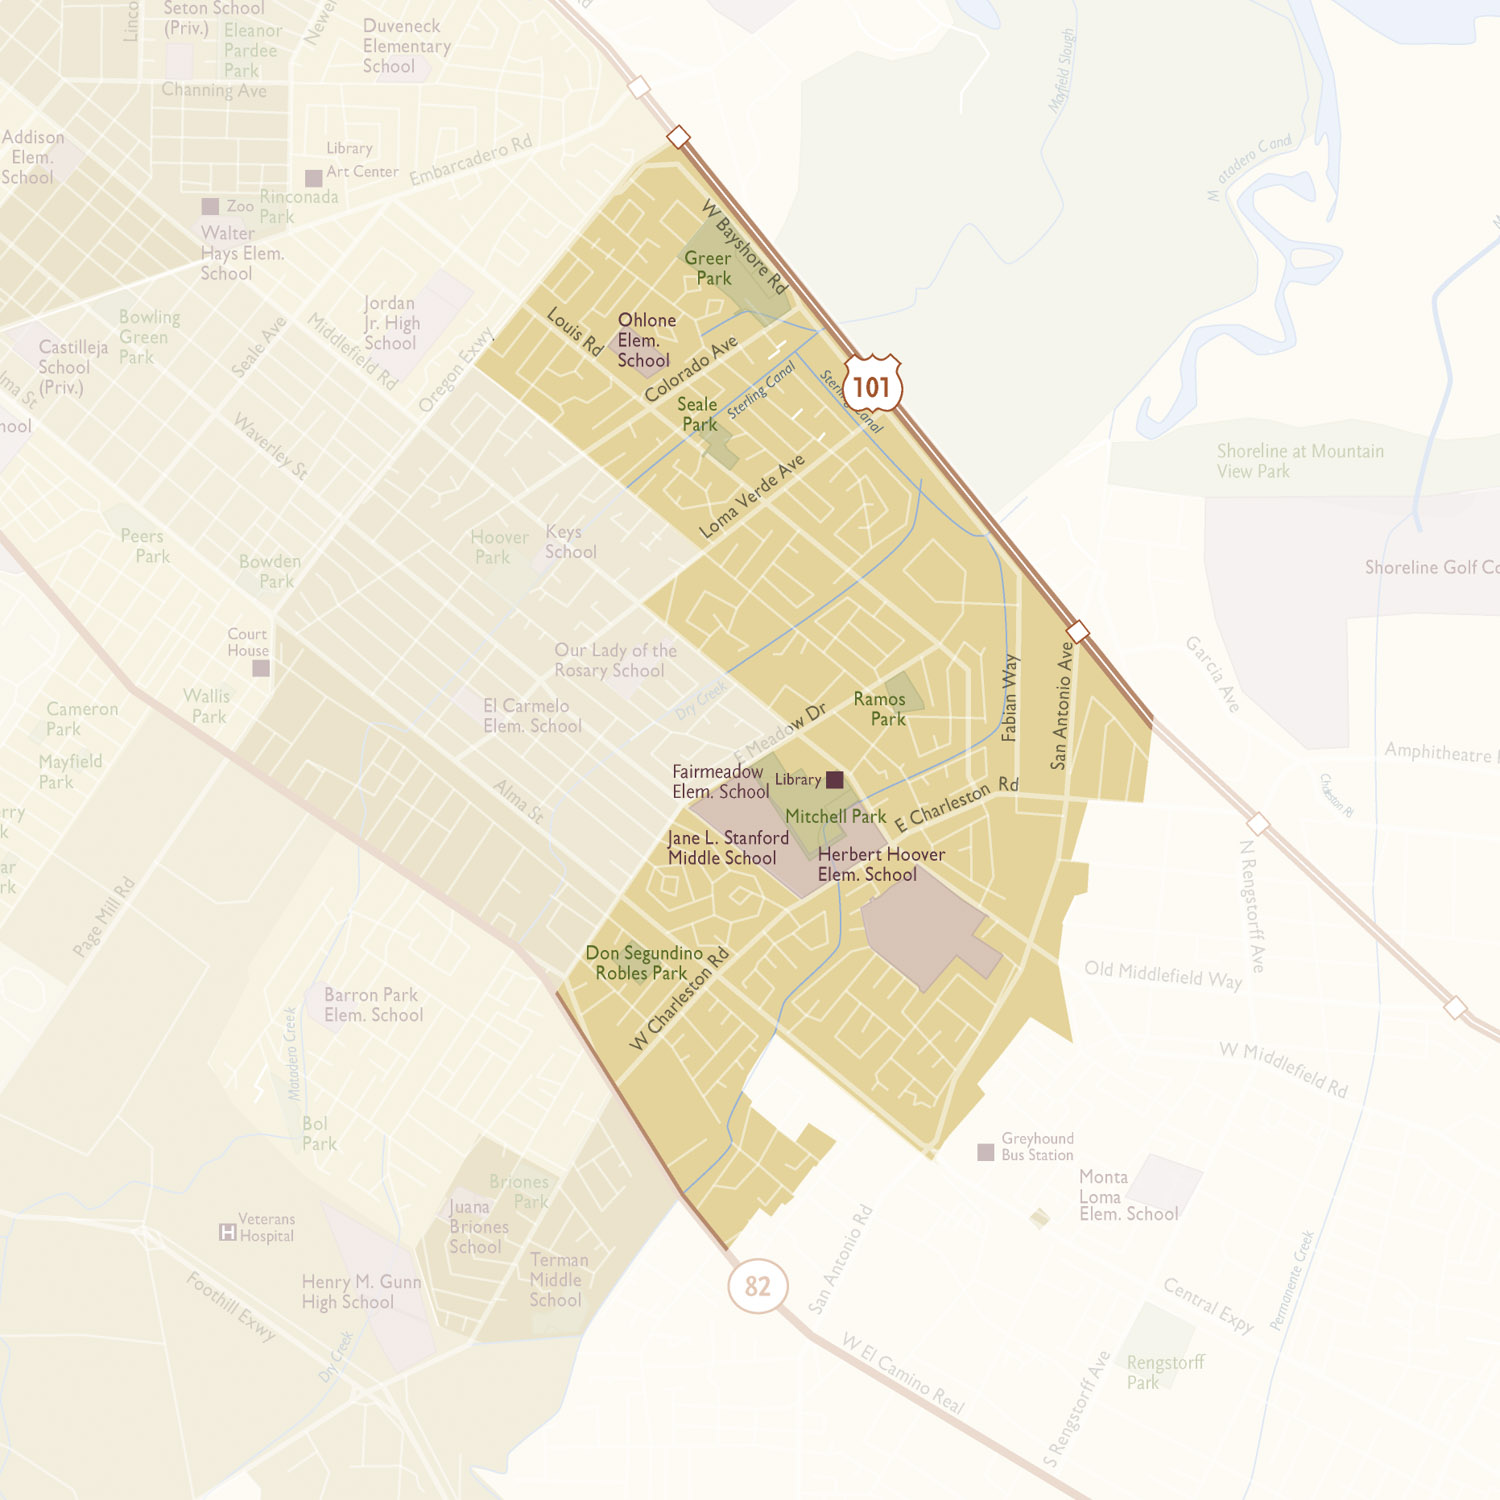 dreyfus-communities-palo-alto-maps-9.jpg